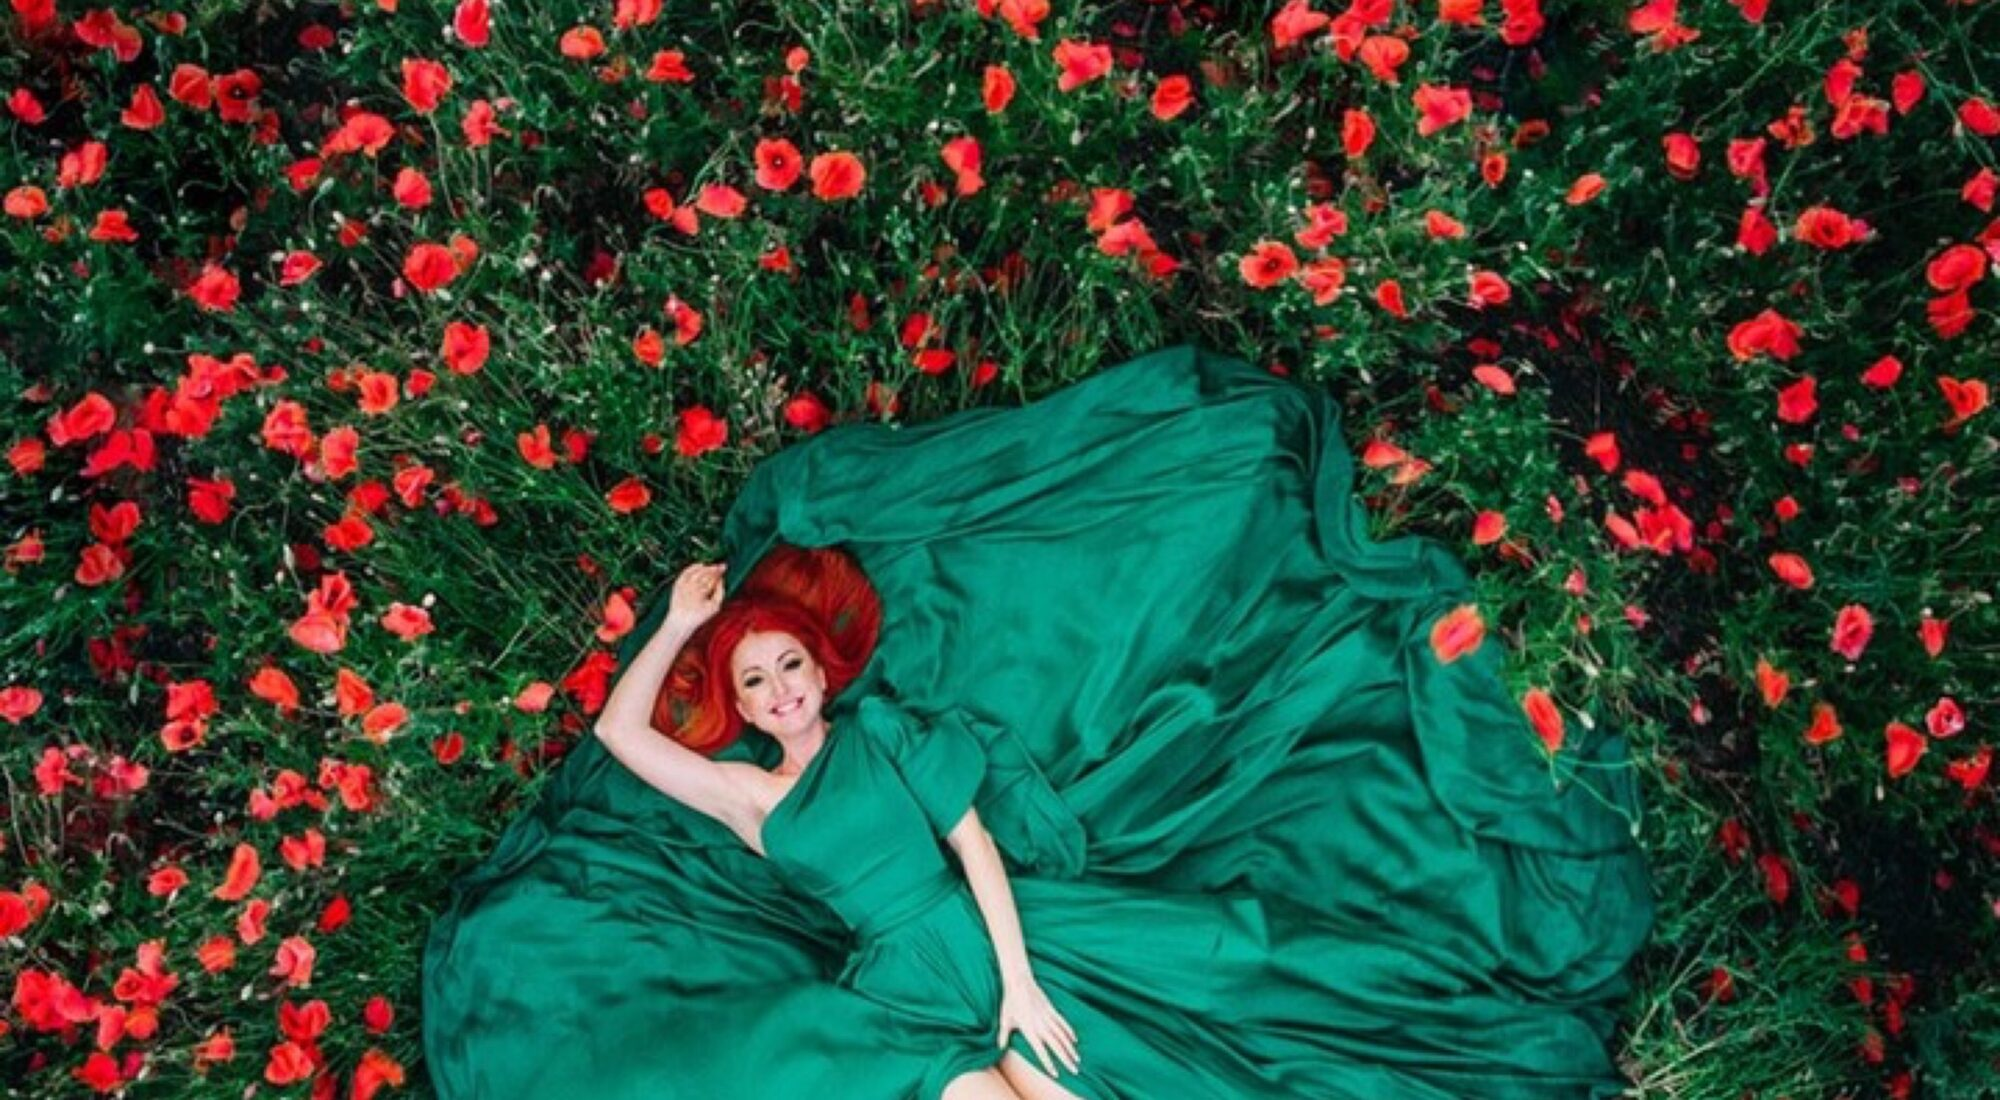 Image of a lady in a green dress laying down in the grass.